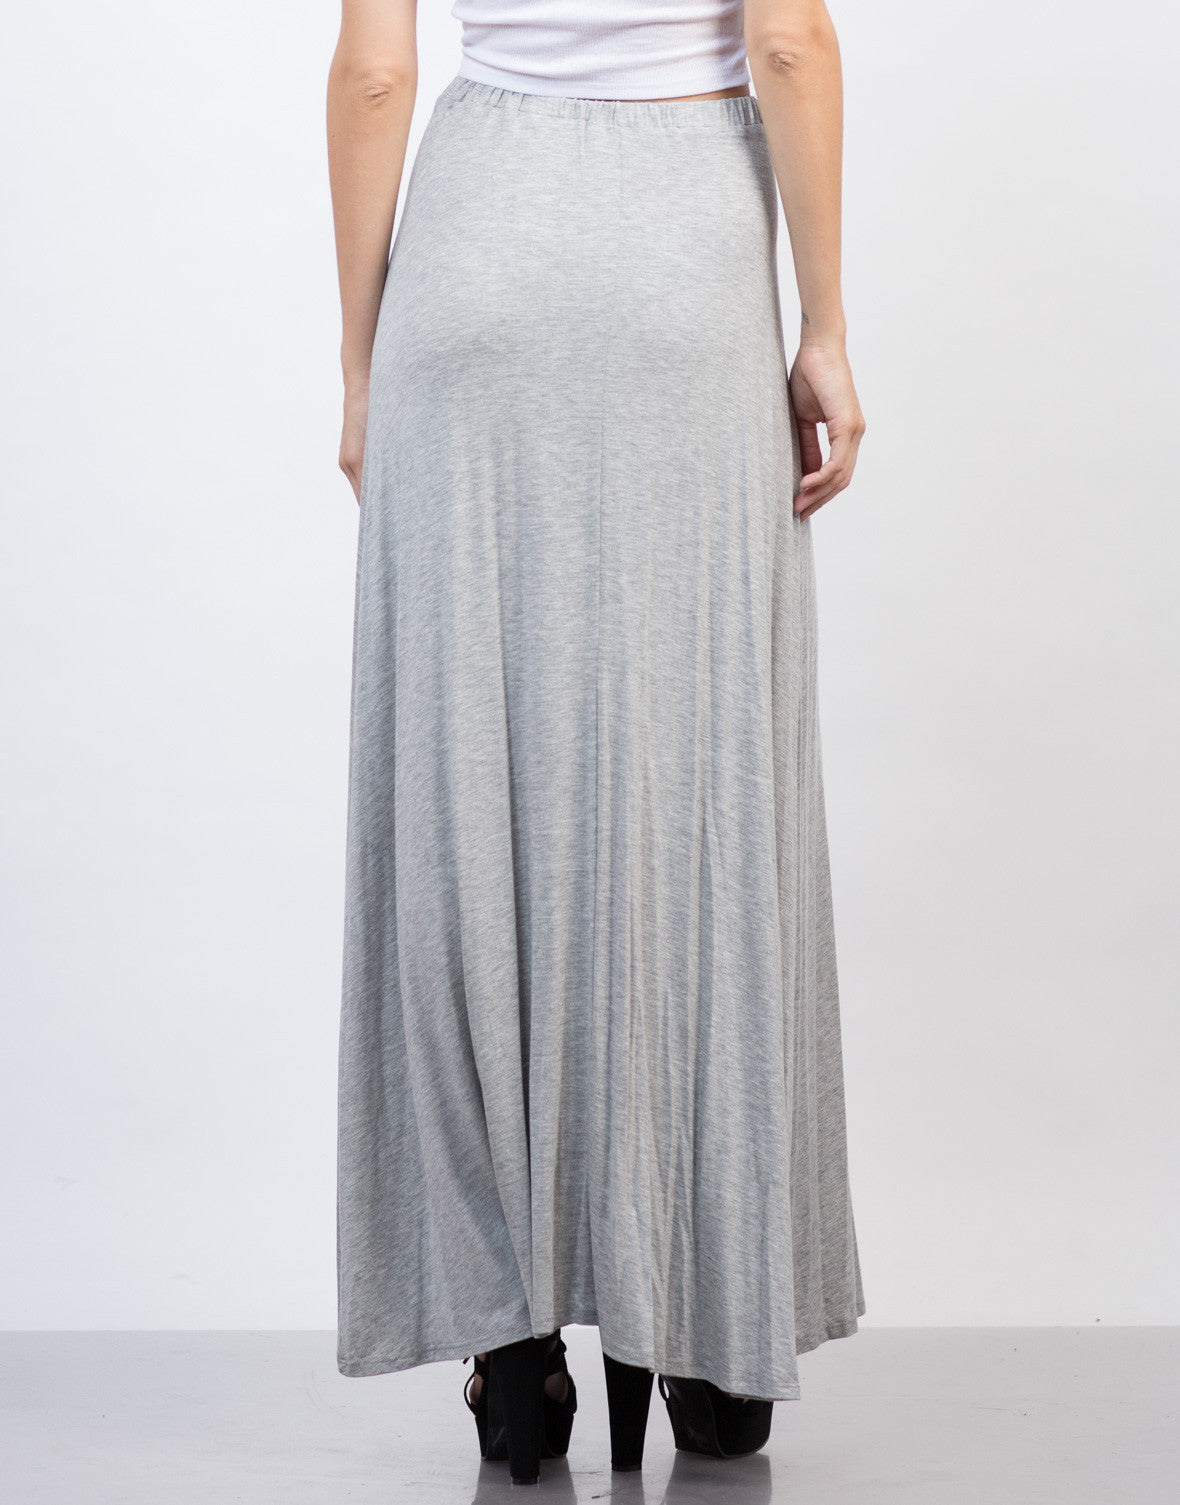 Back View of Flowy Maxi Skirt